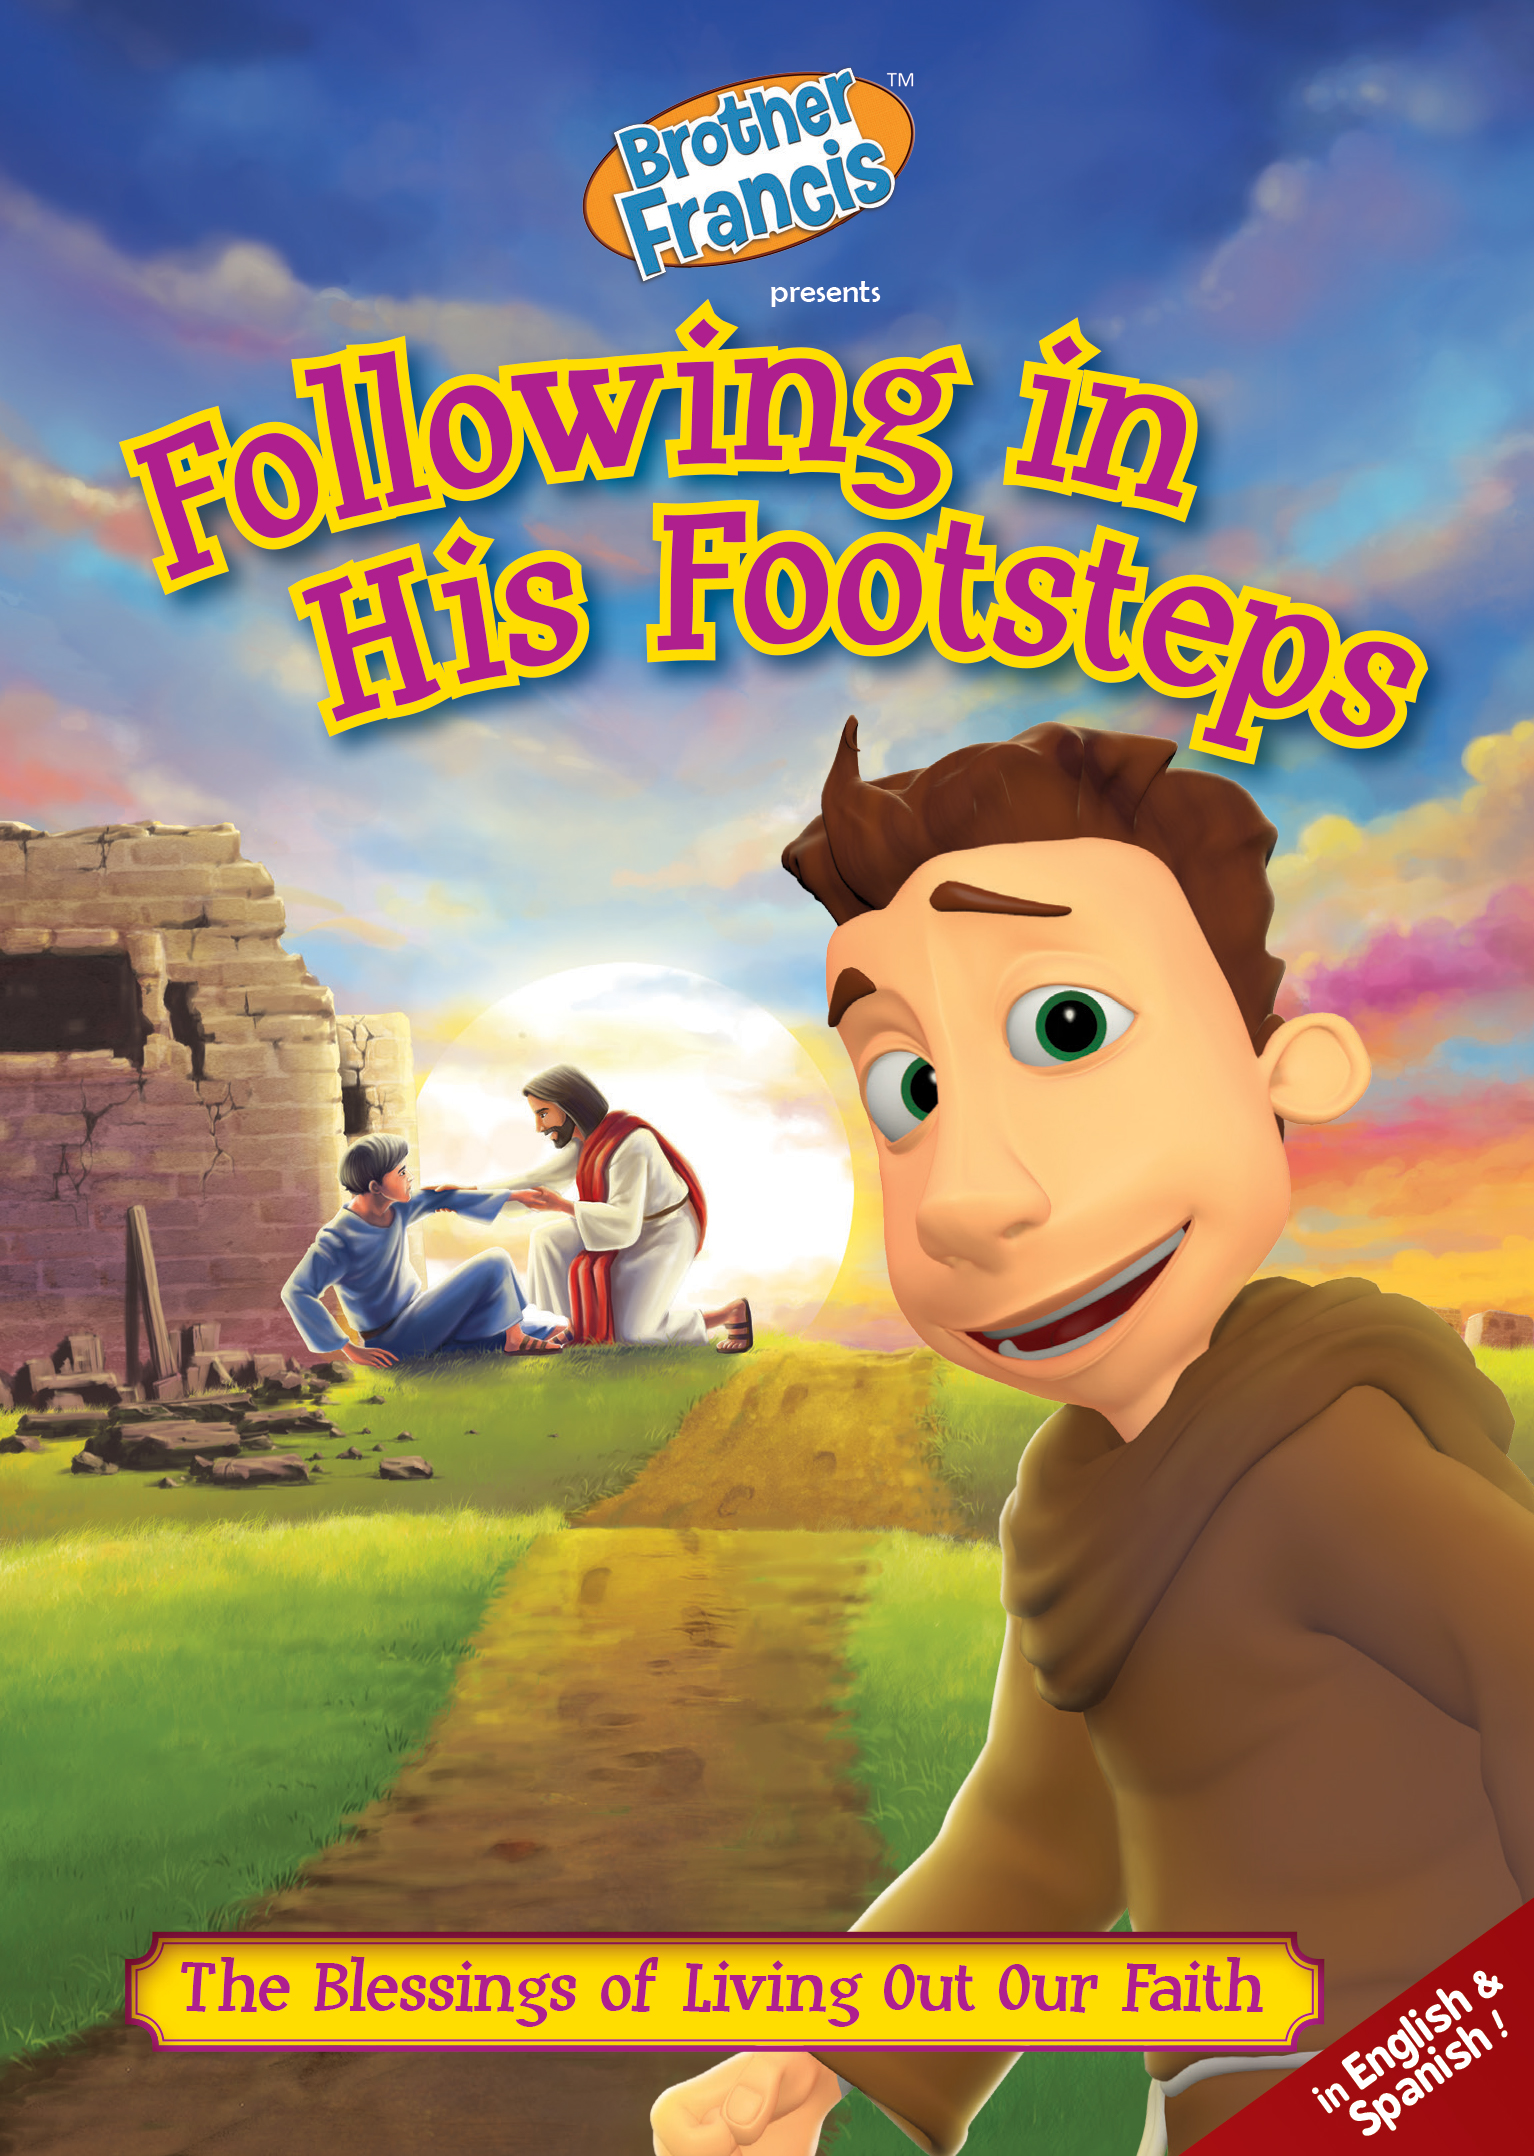 Brother Francis Episode 9: Following in His Footsteps